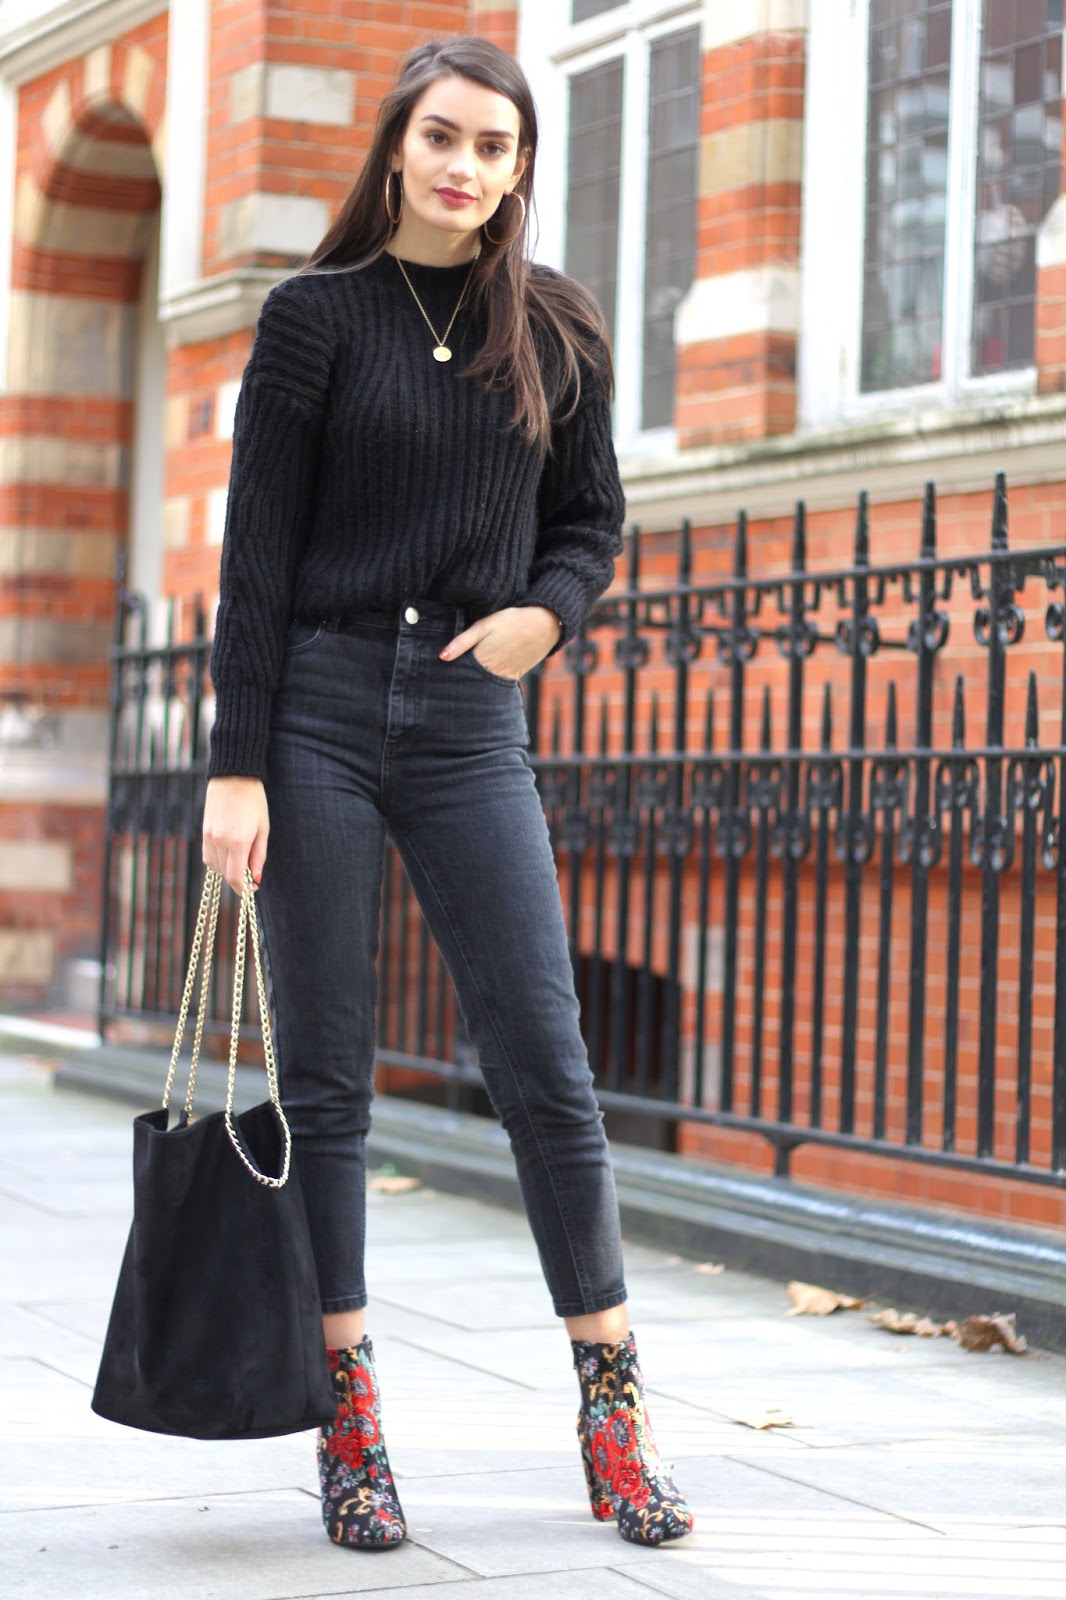 london peexo style blogger